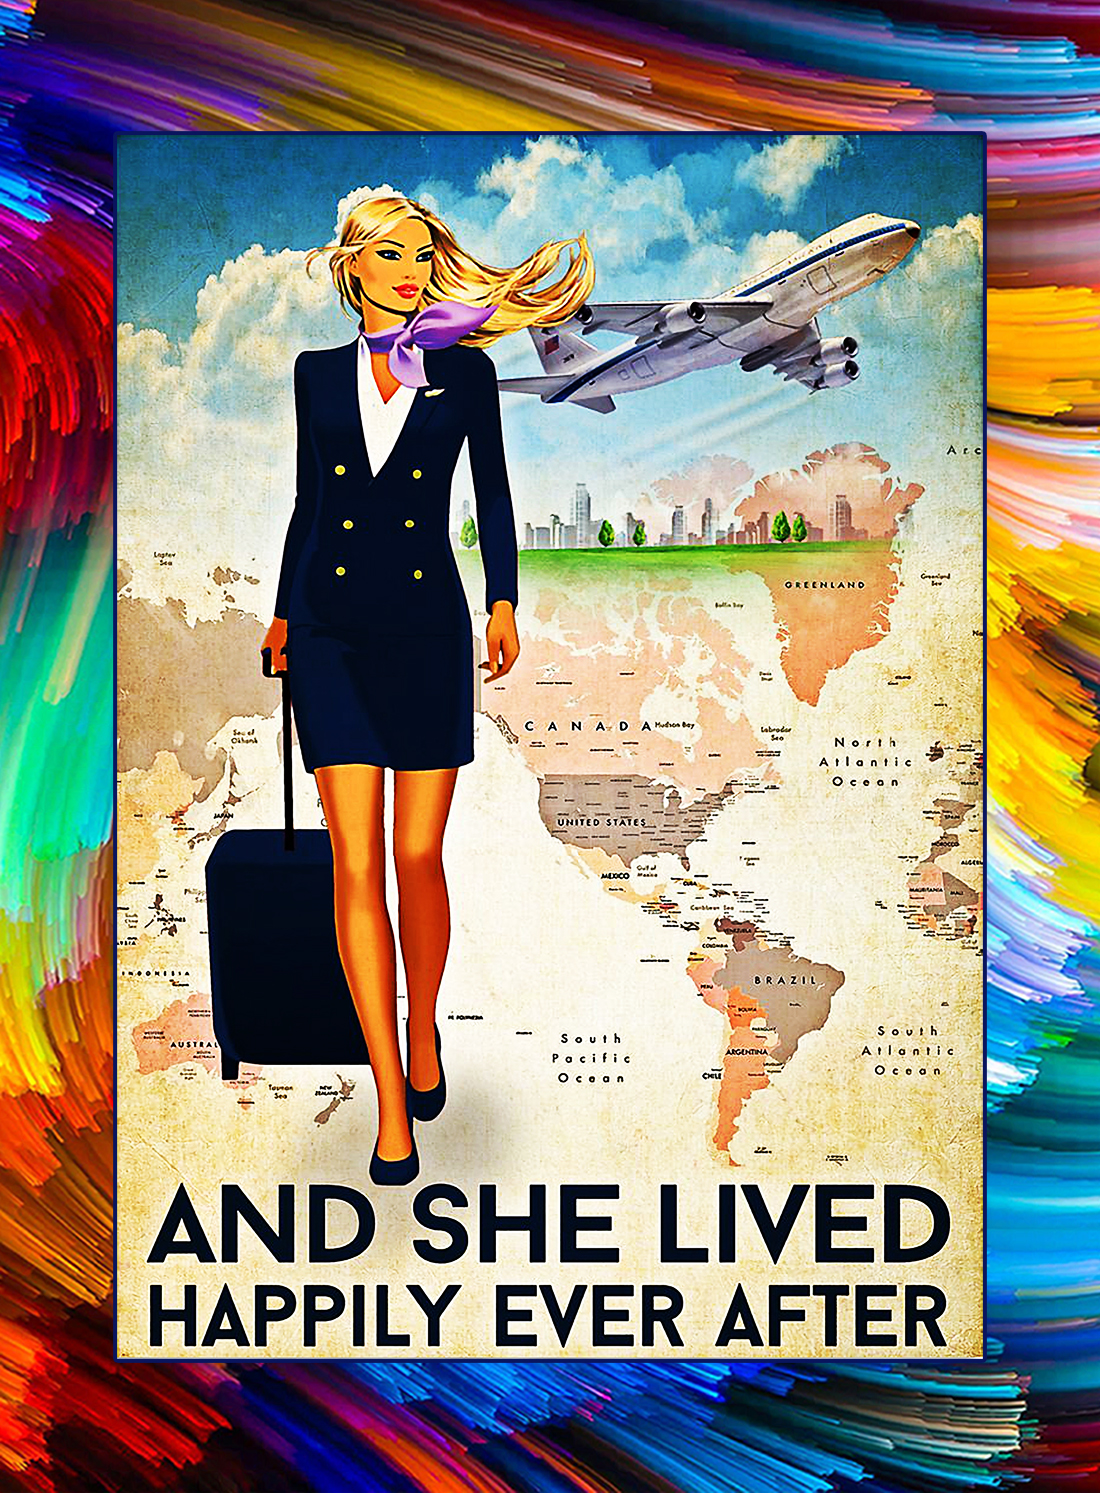 Flight attendant and she lived happily ever after poster - Style 2